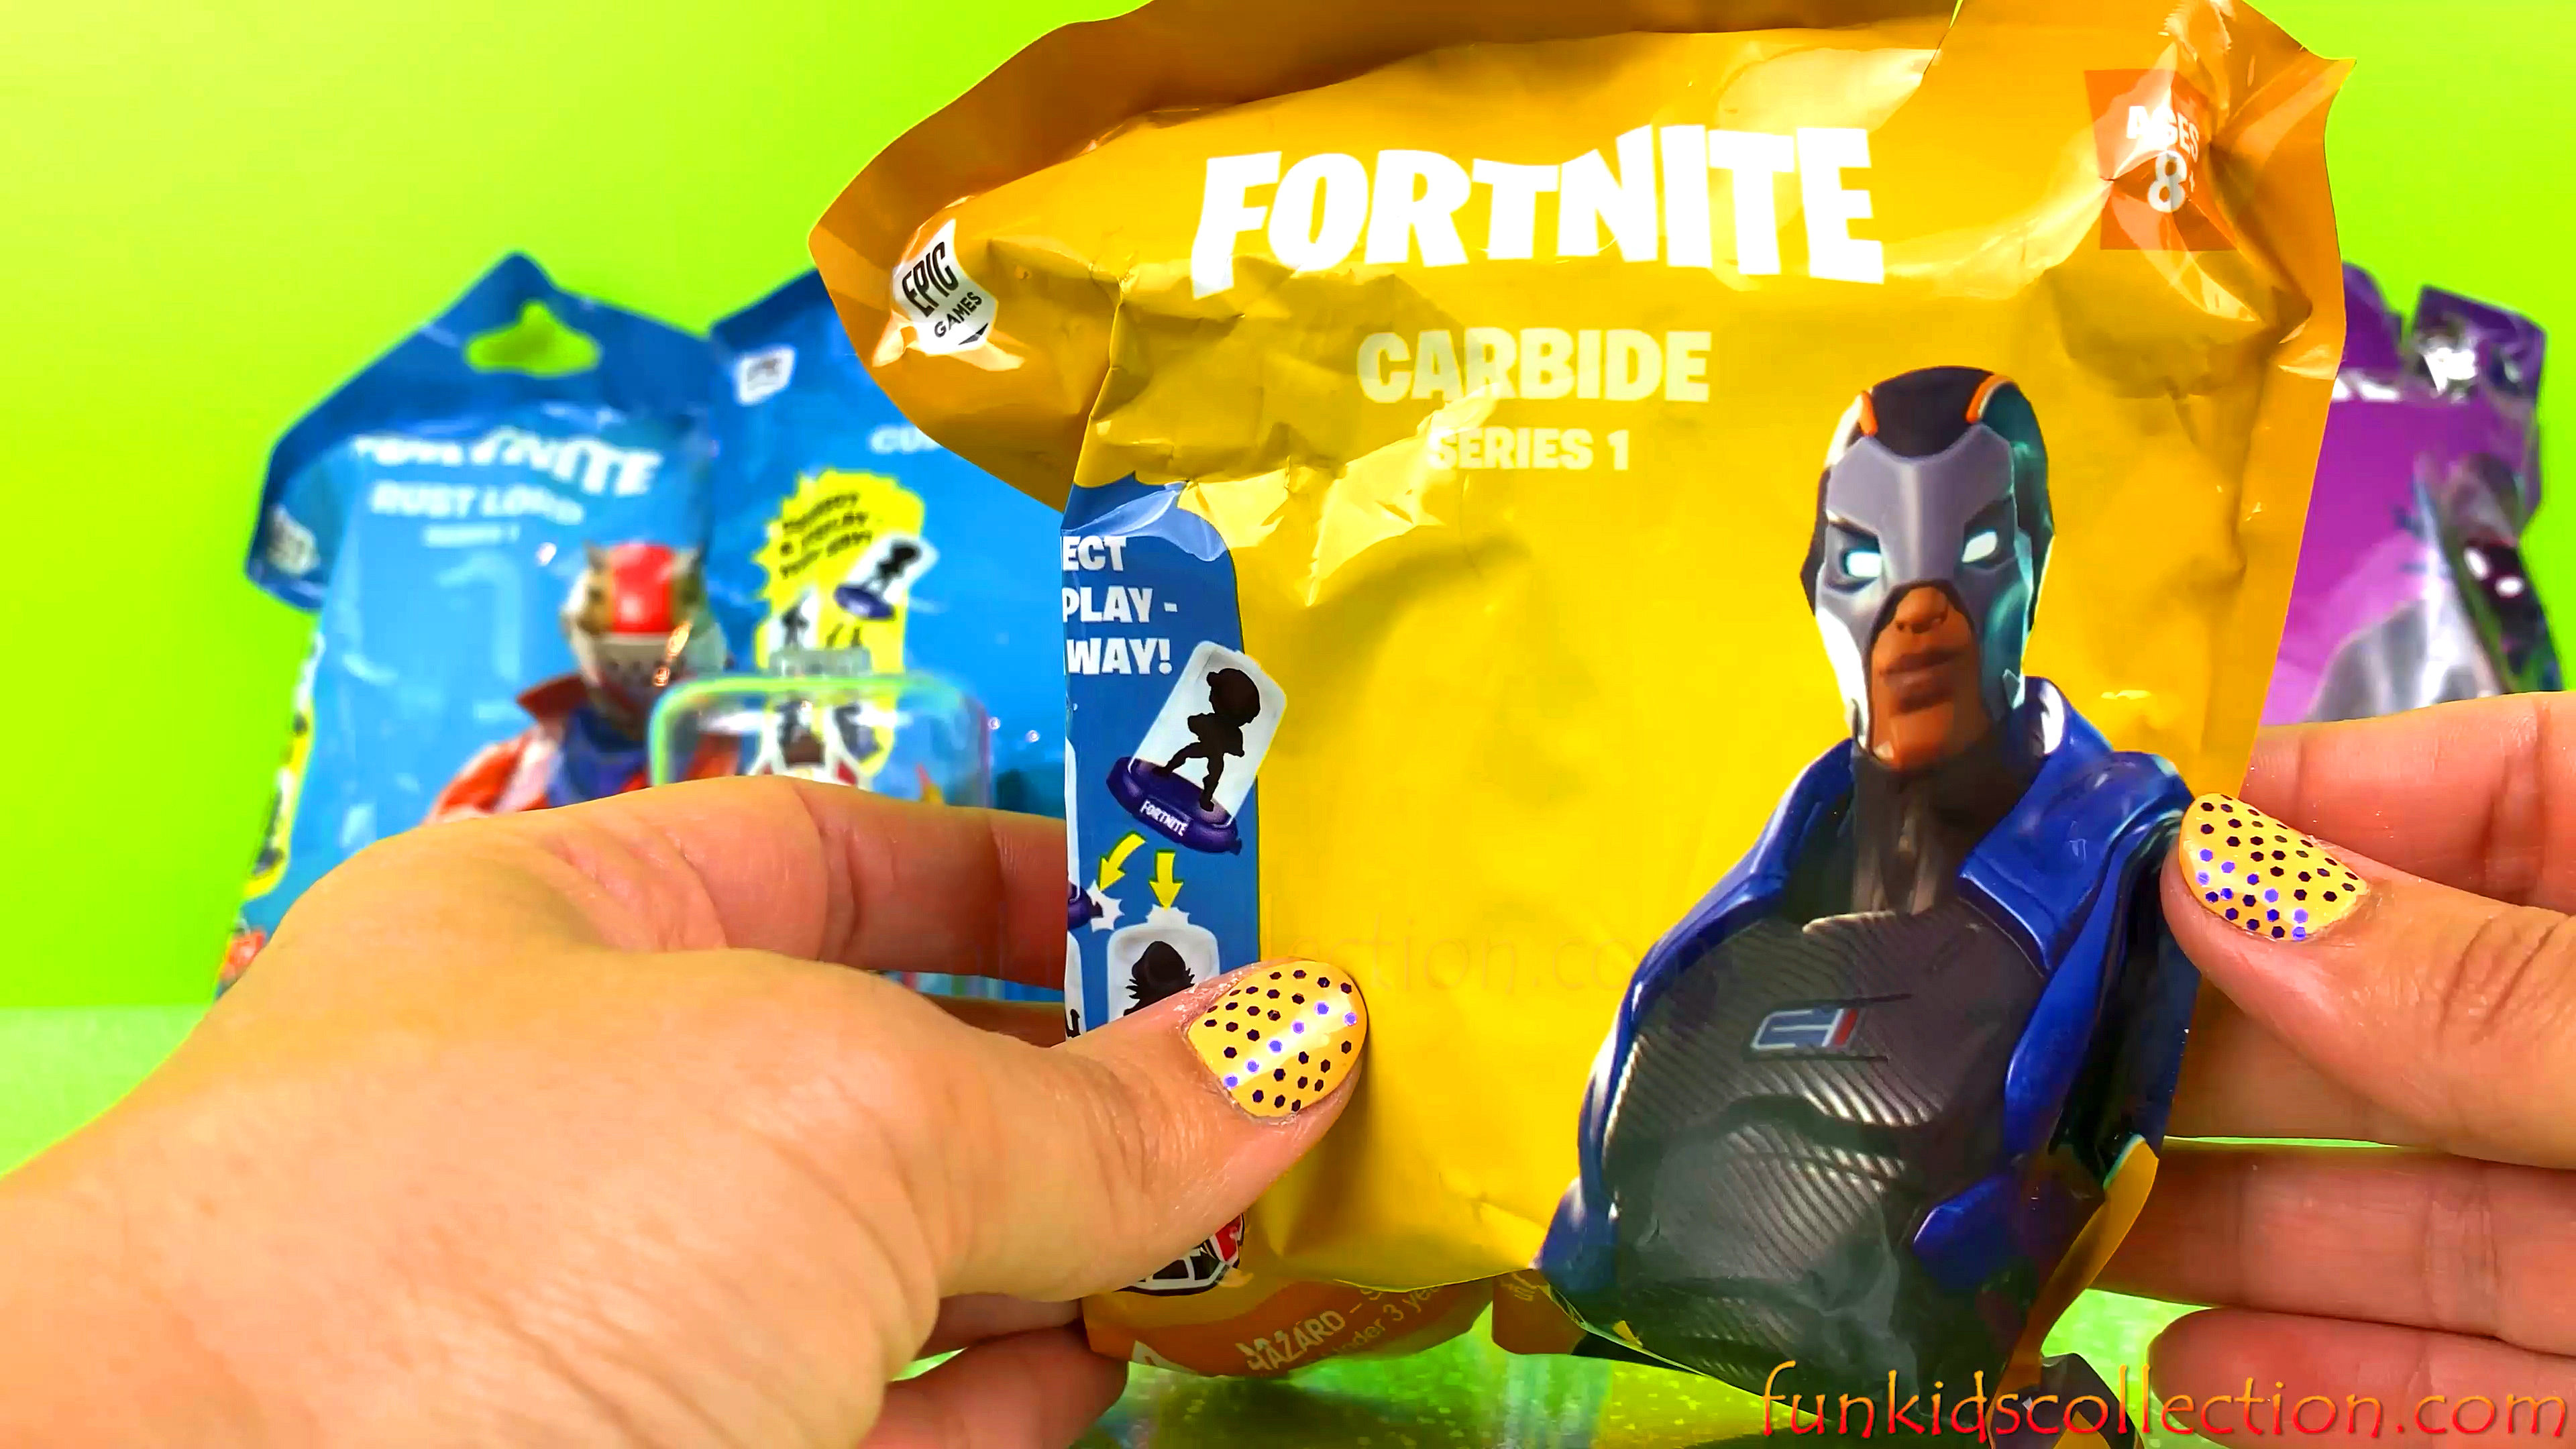 Fortnite Blind Bags Opening Series 1 | Fortnite Drift Blind Bag Fortnite Carbide Fortnite Rust Lord